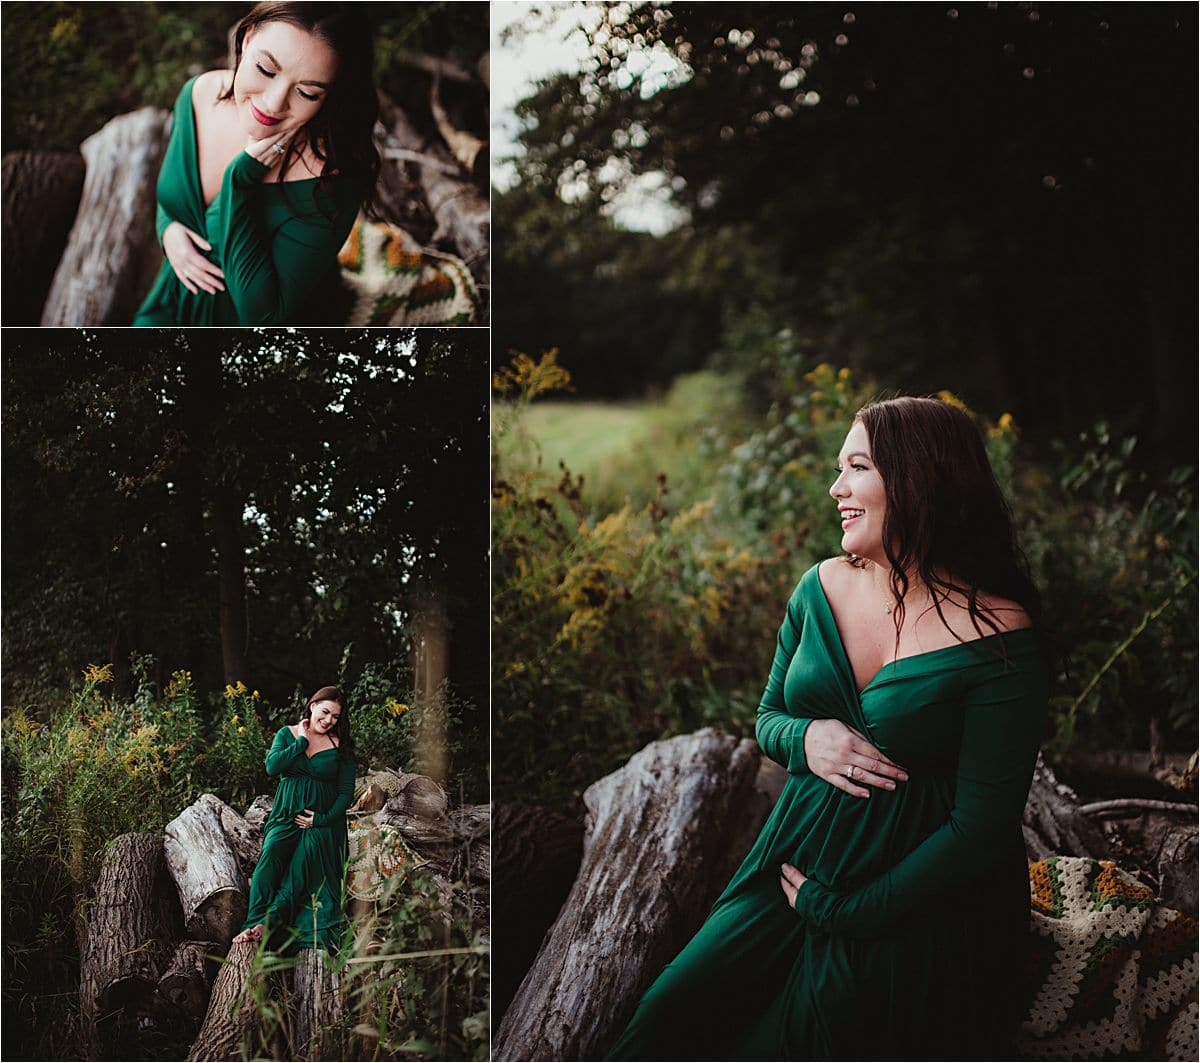 Summer Maternity Session in Woods